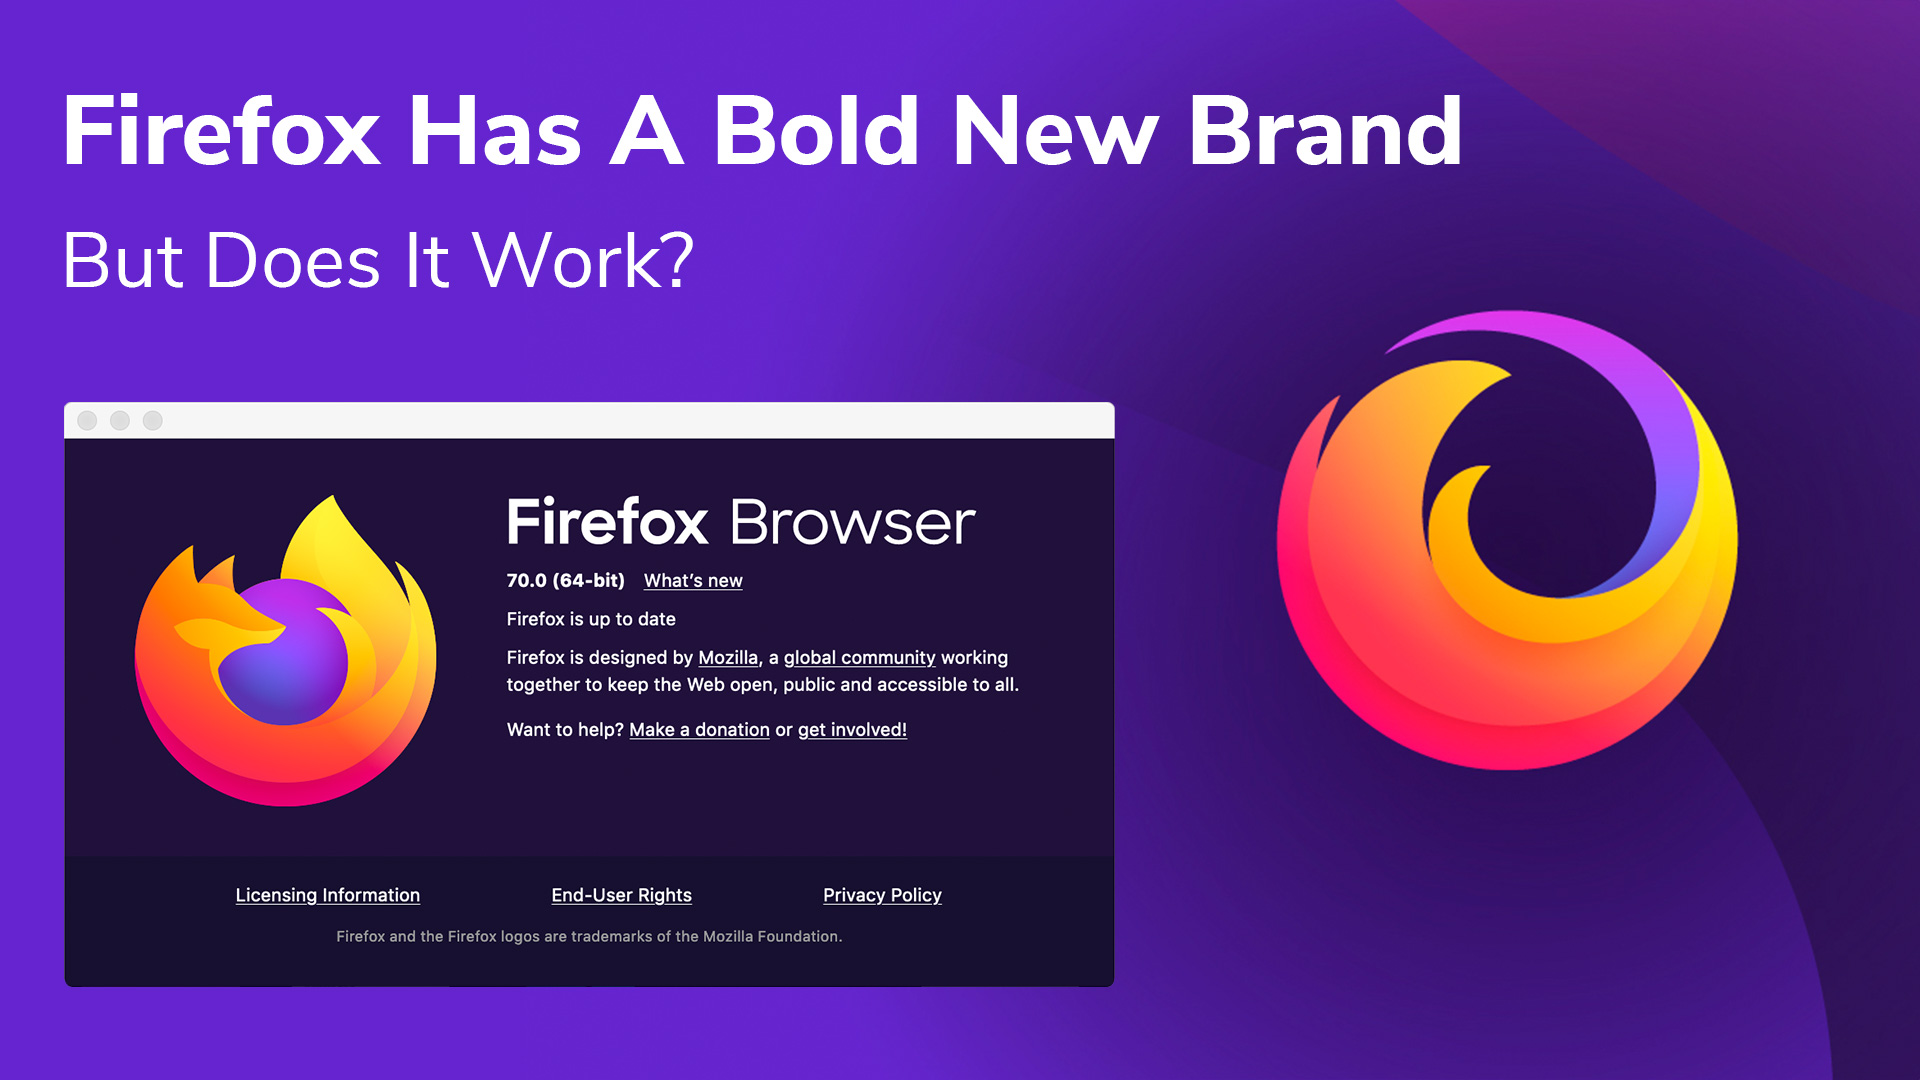 Firefox has a bold new brand - But does it work? - Featured image